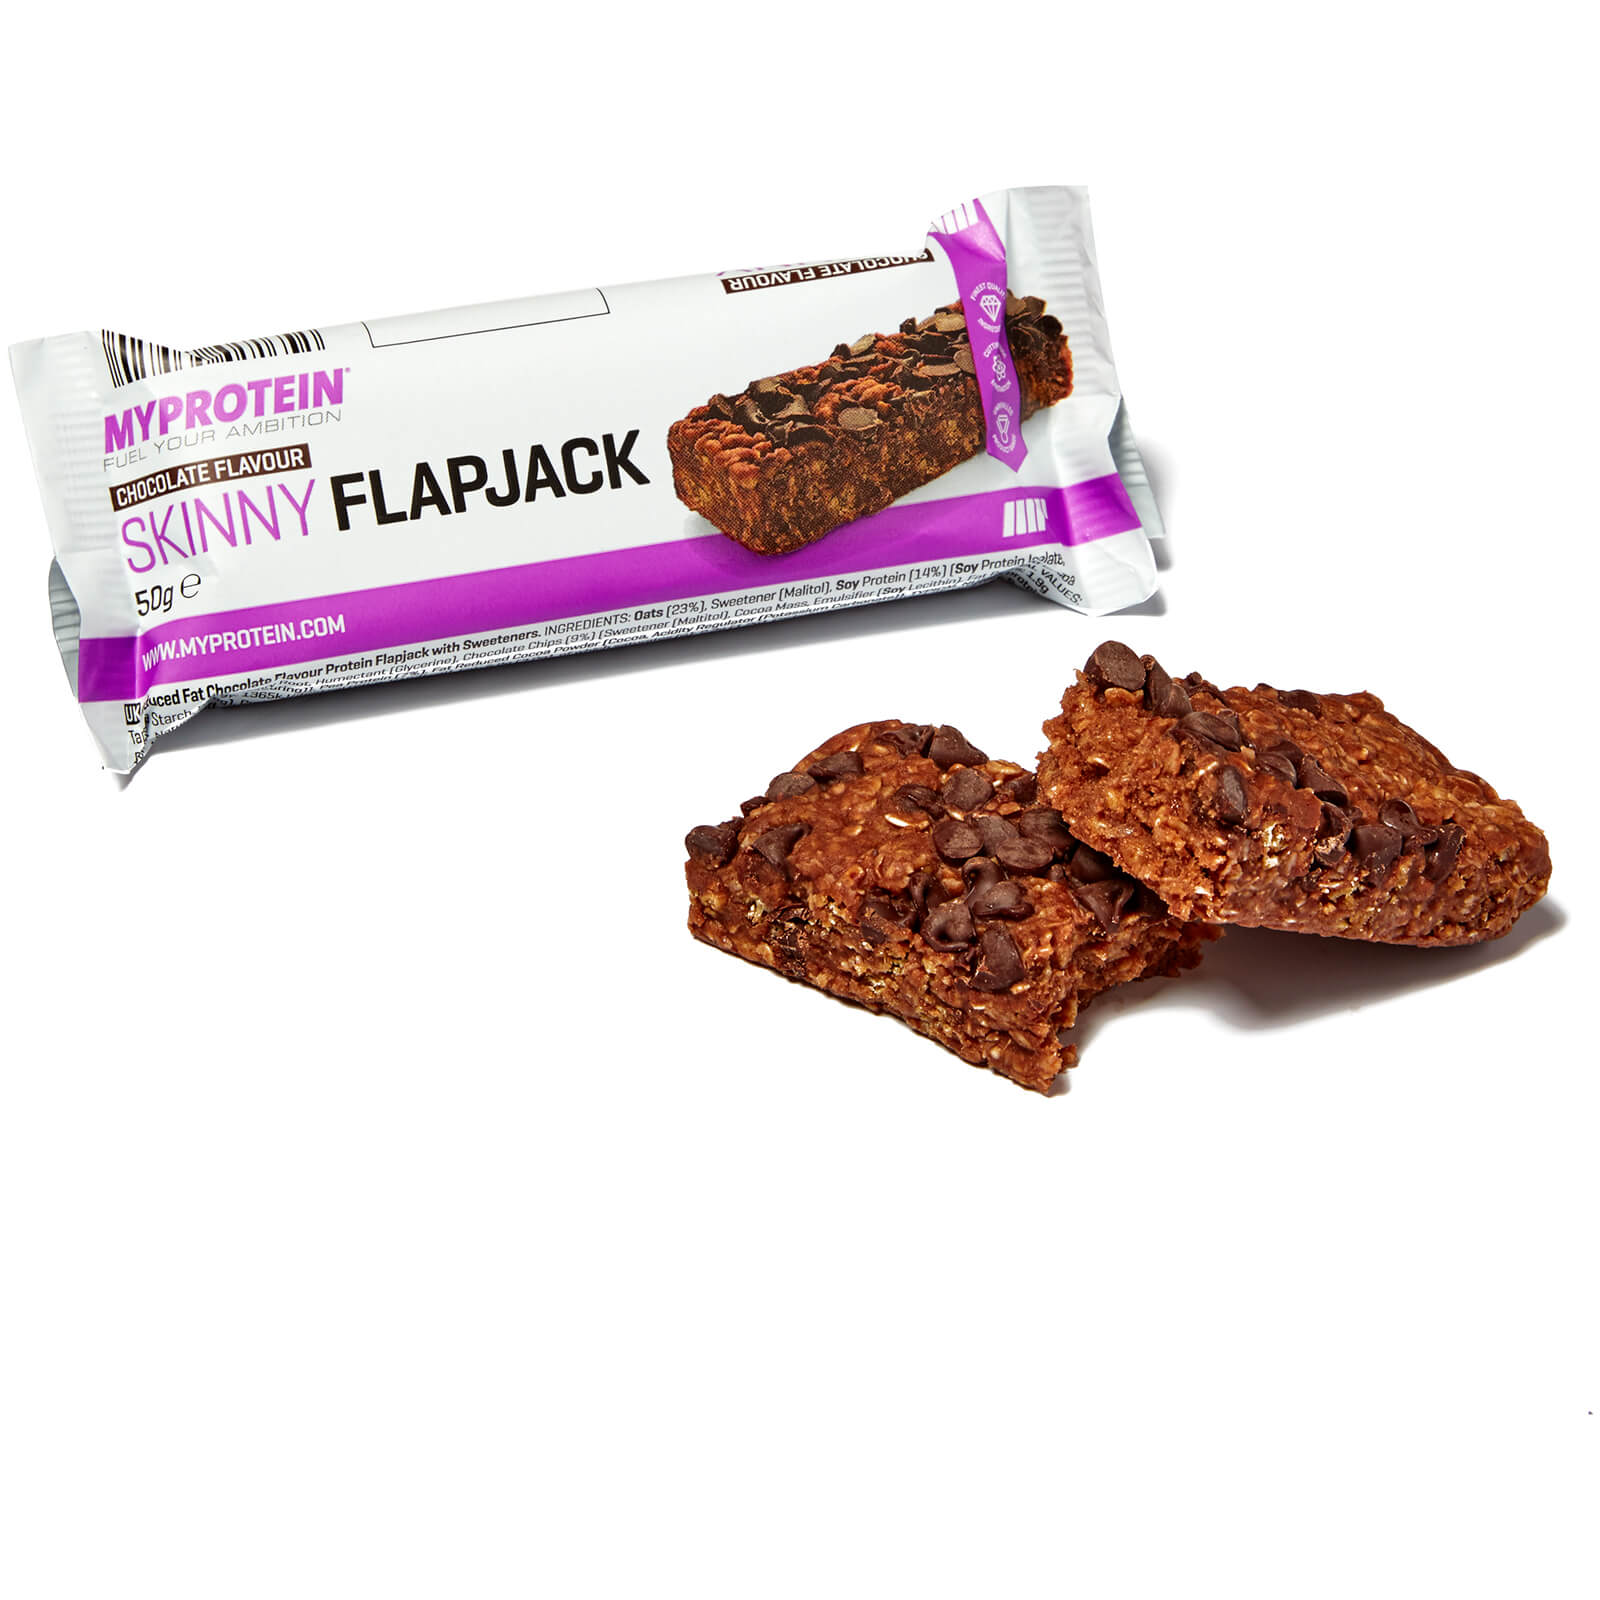 Skinny Flapjack, 50g (Sample) Chocolate